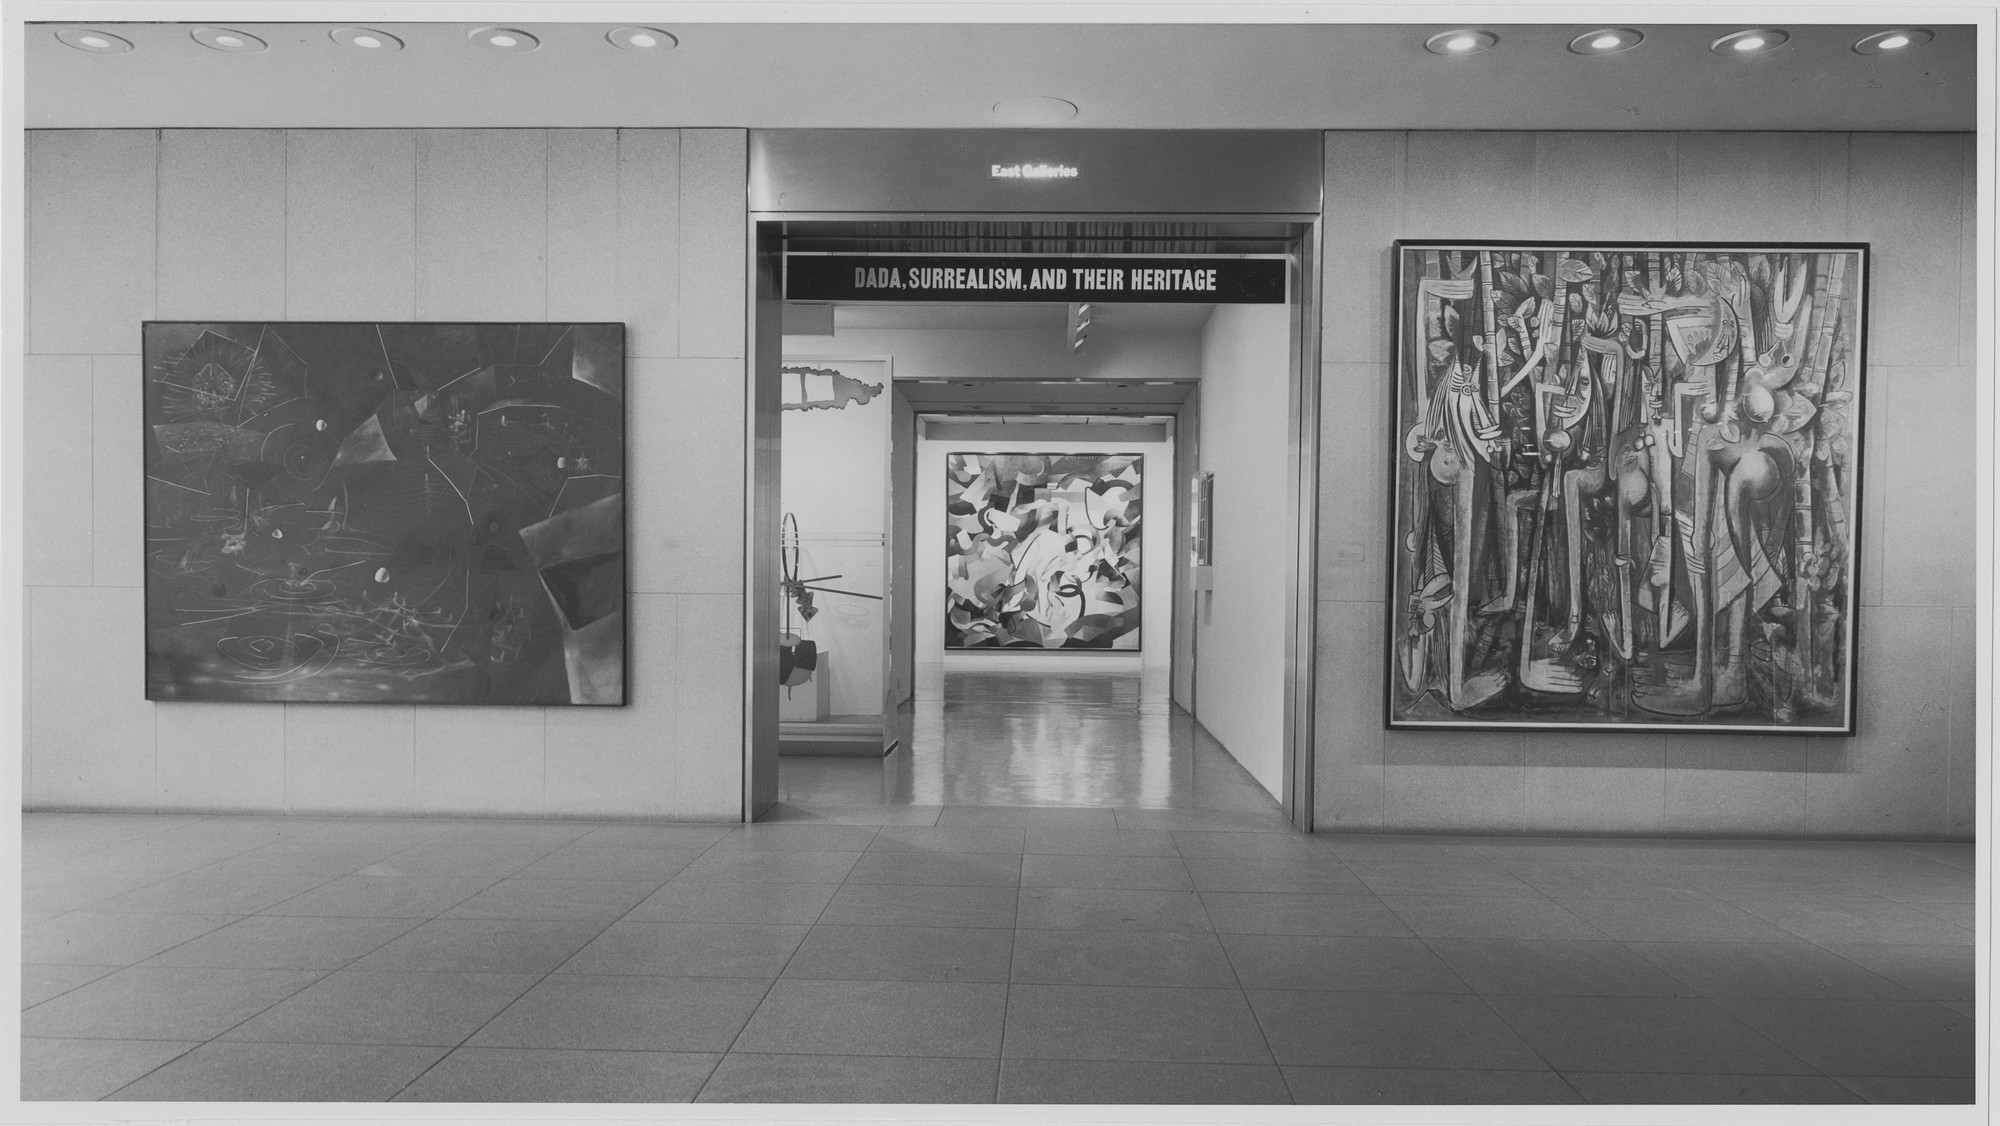 "Installation view of the exhibition, ""Dada, Surrealism and their Heritage"" March 27, 1968–June 9, 1968. Photographic Archive. The Museum of Modern Art Archives, New York. IN855.1. Photograph by James Mathews."